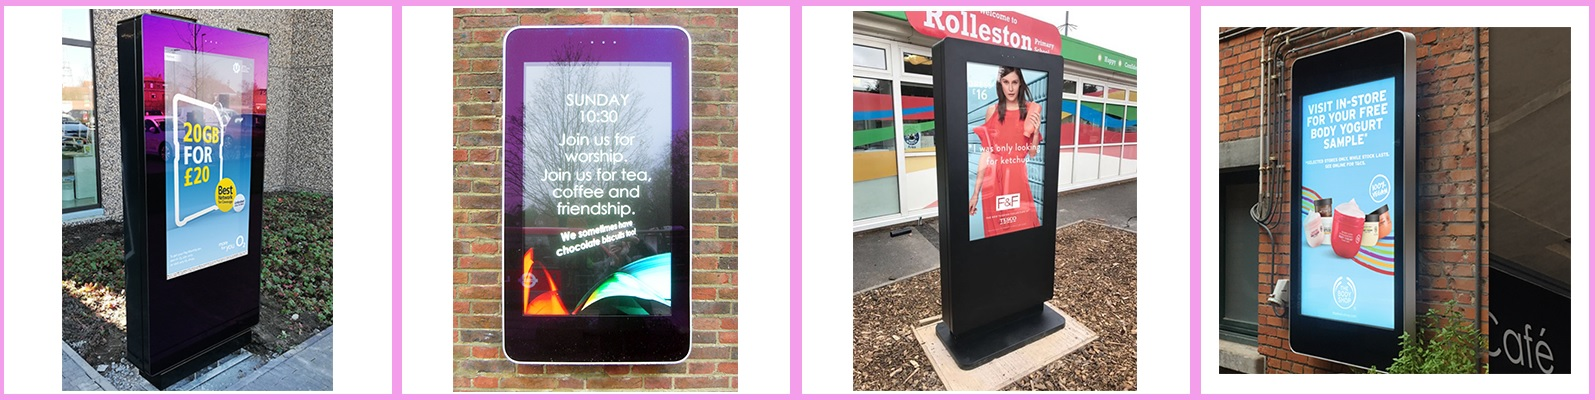 cds outdoor displays